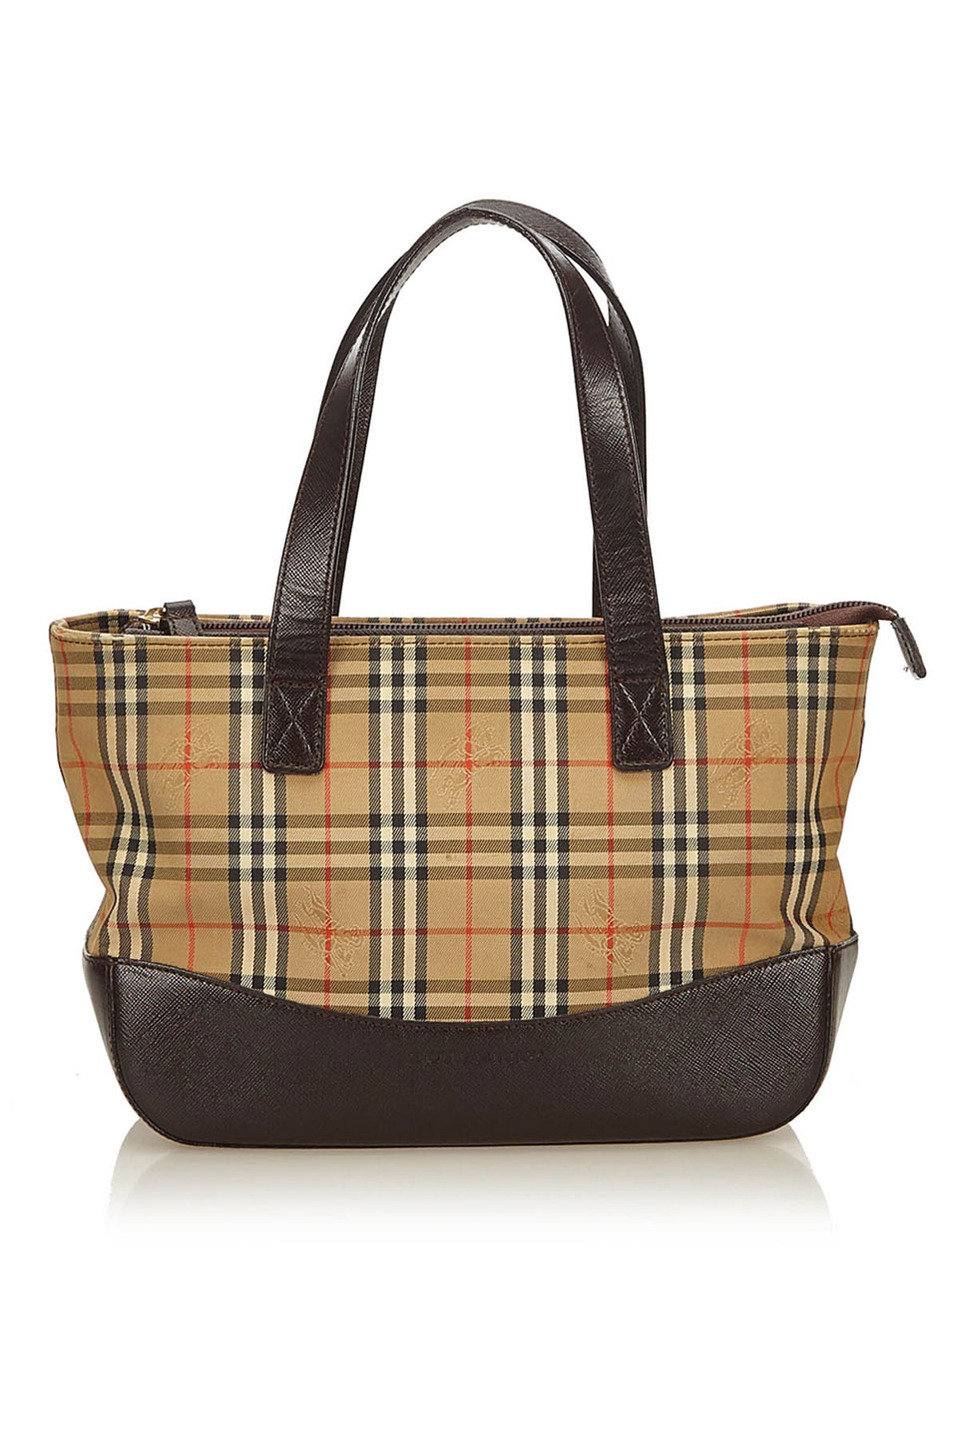 Burberry Plaid Canvas Handbag in Brown, Beige and Multi